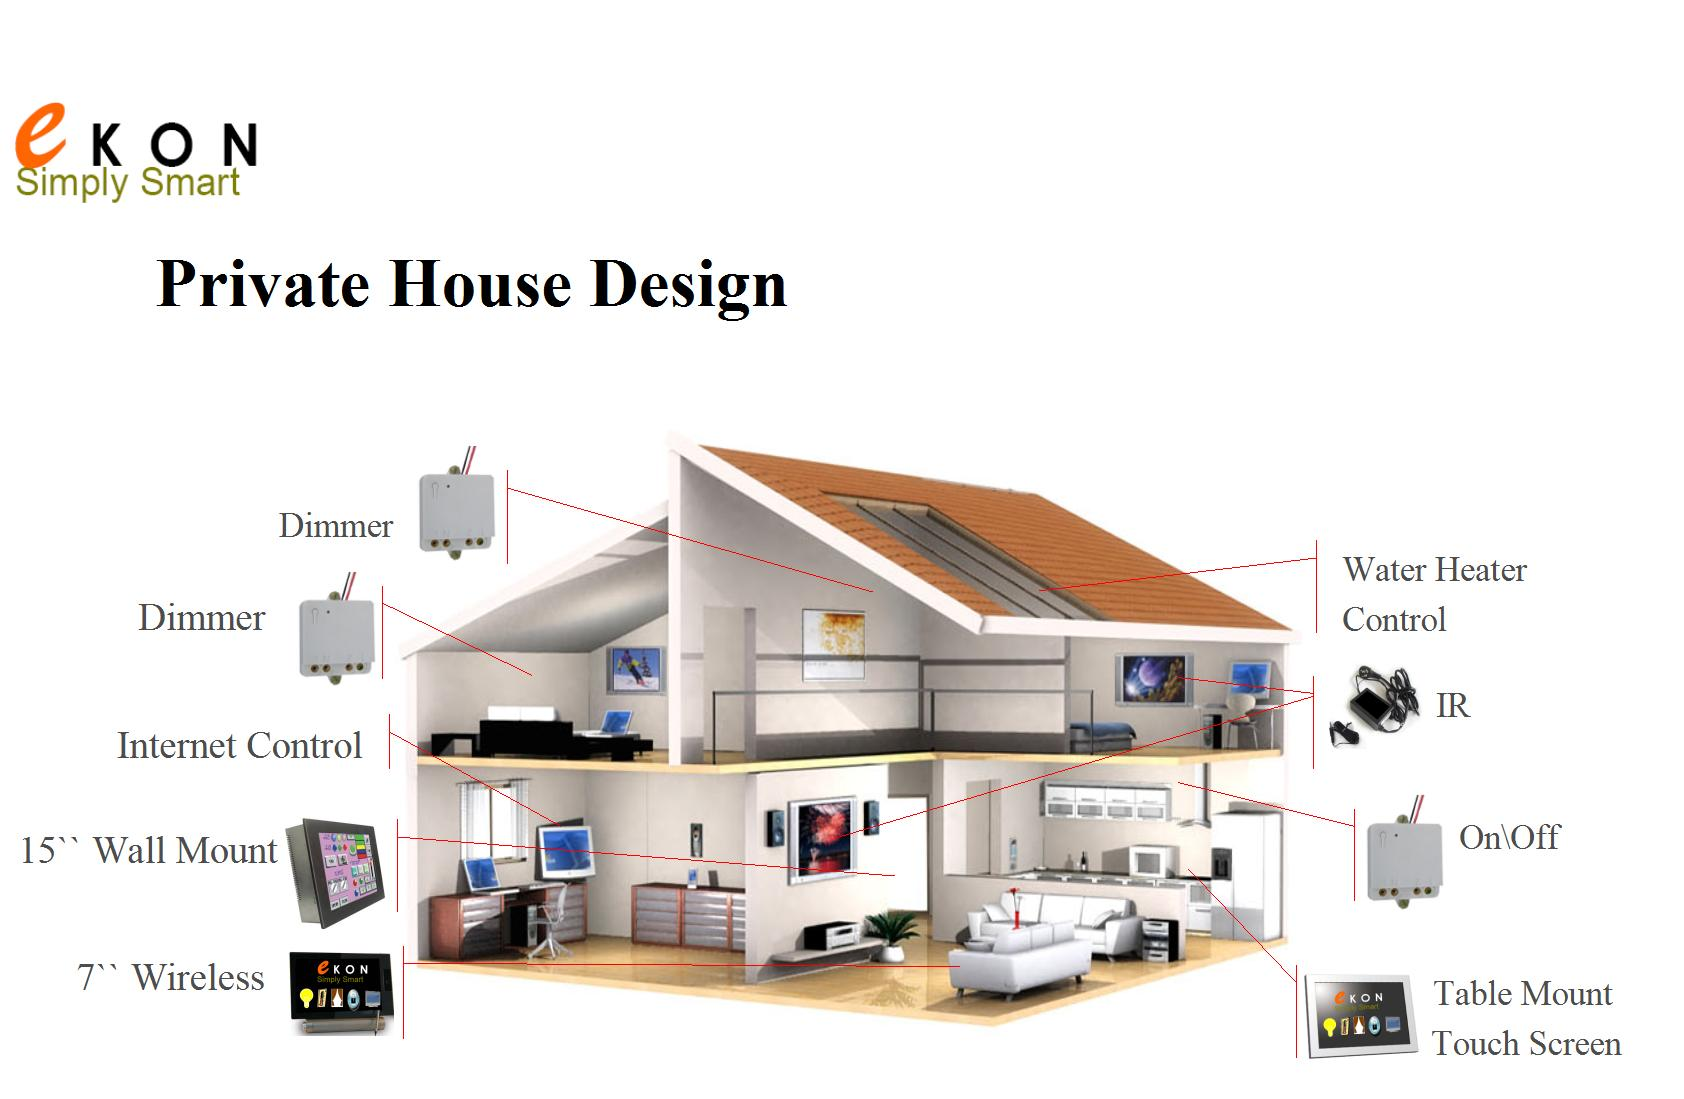 Smart Home Improvement Trends For 2014 Mecc Interiors Design